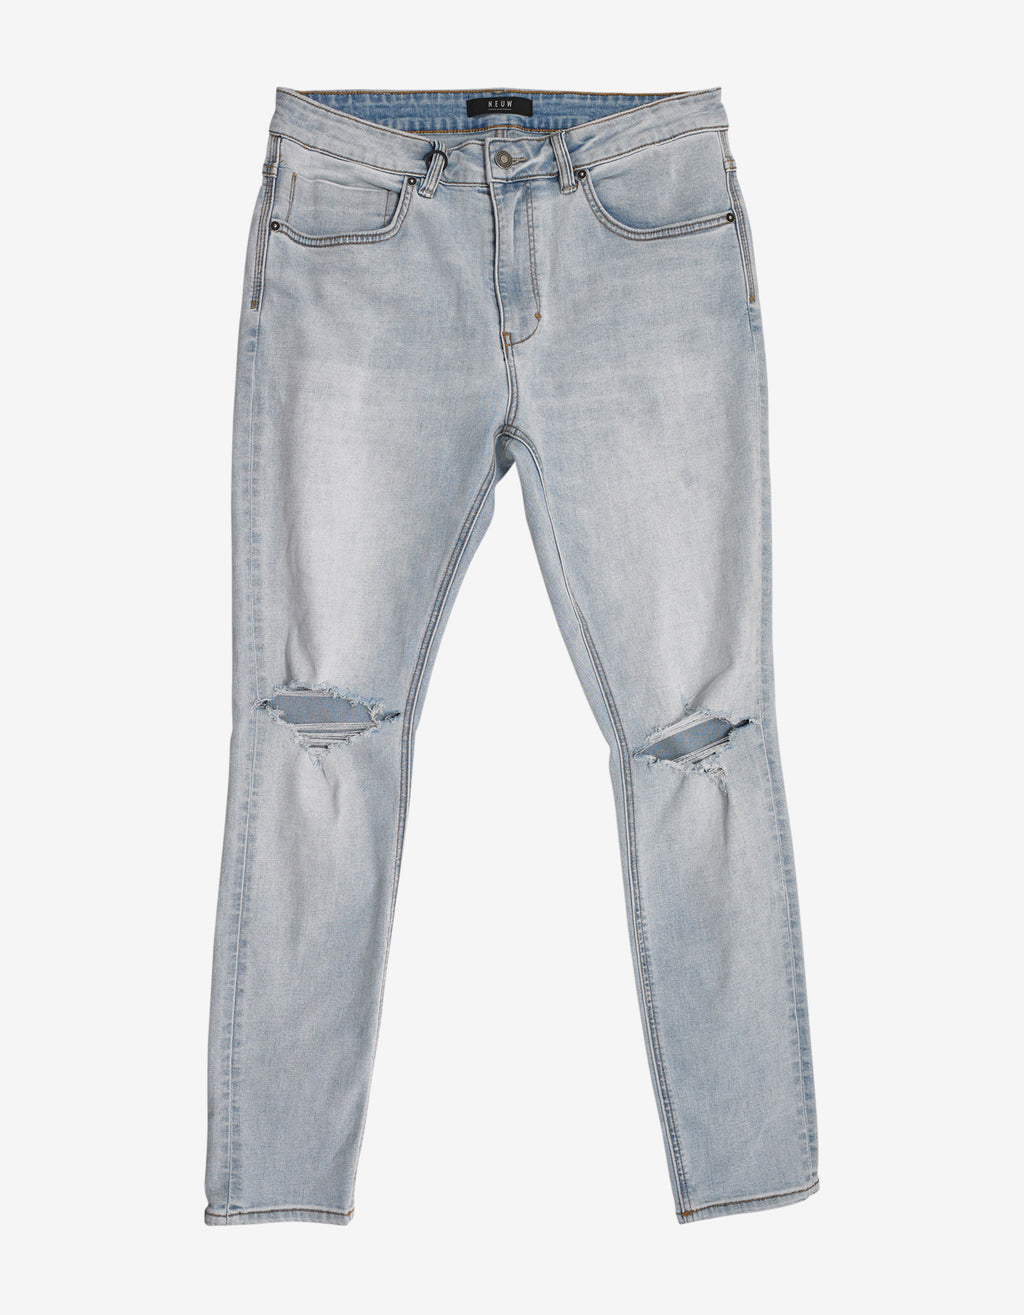 Rebel Skinny Central Jeans